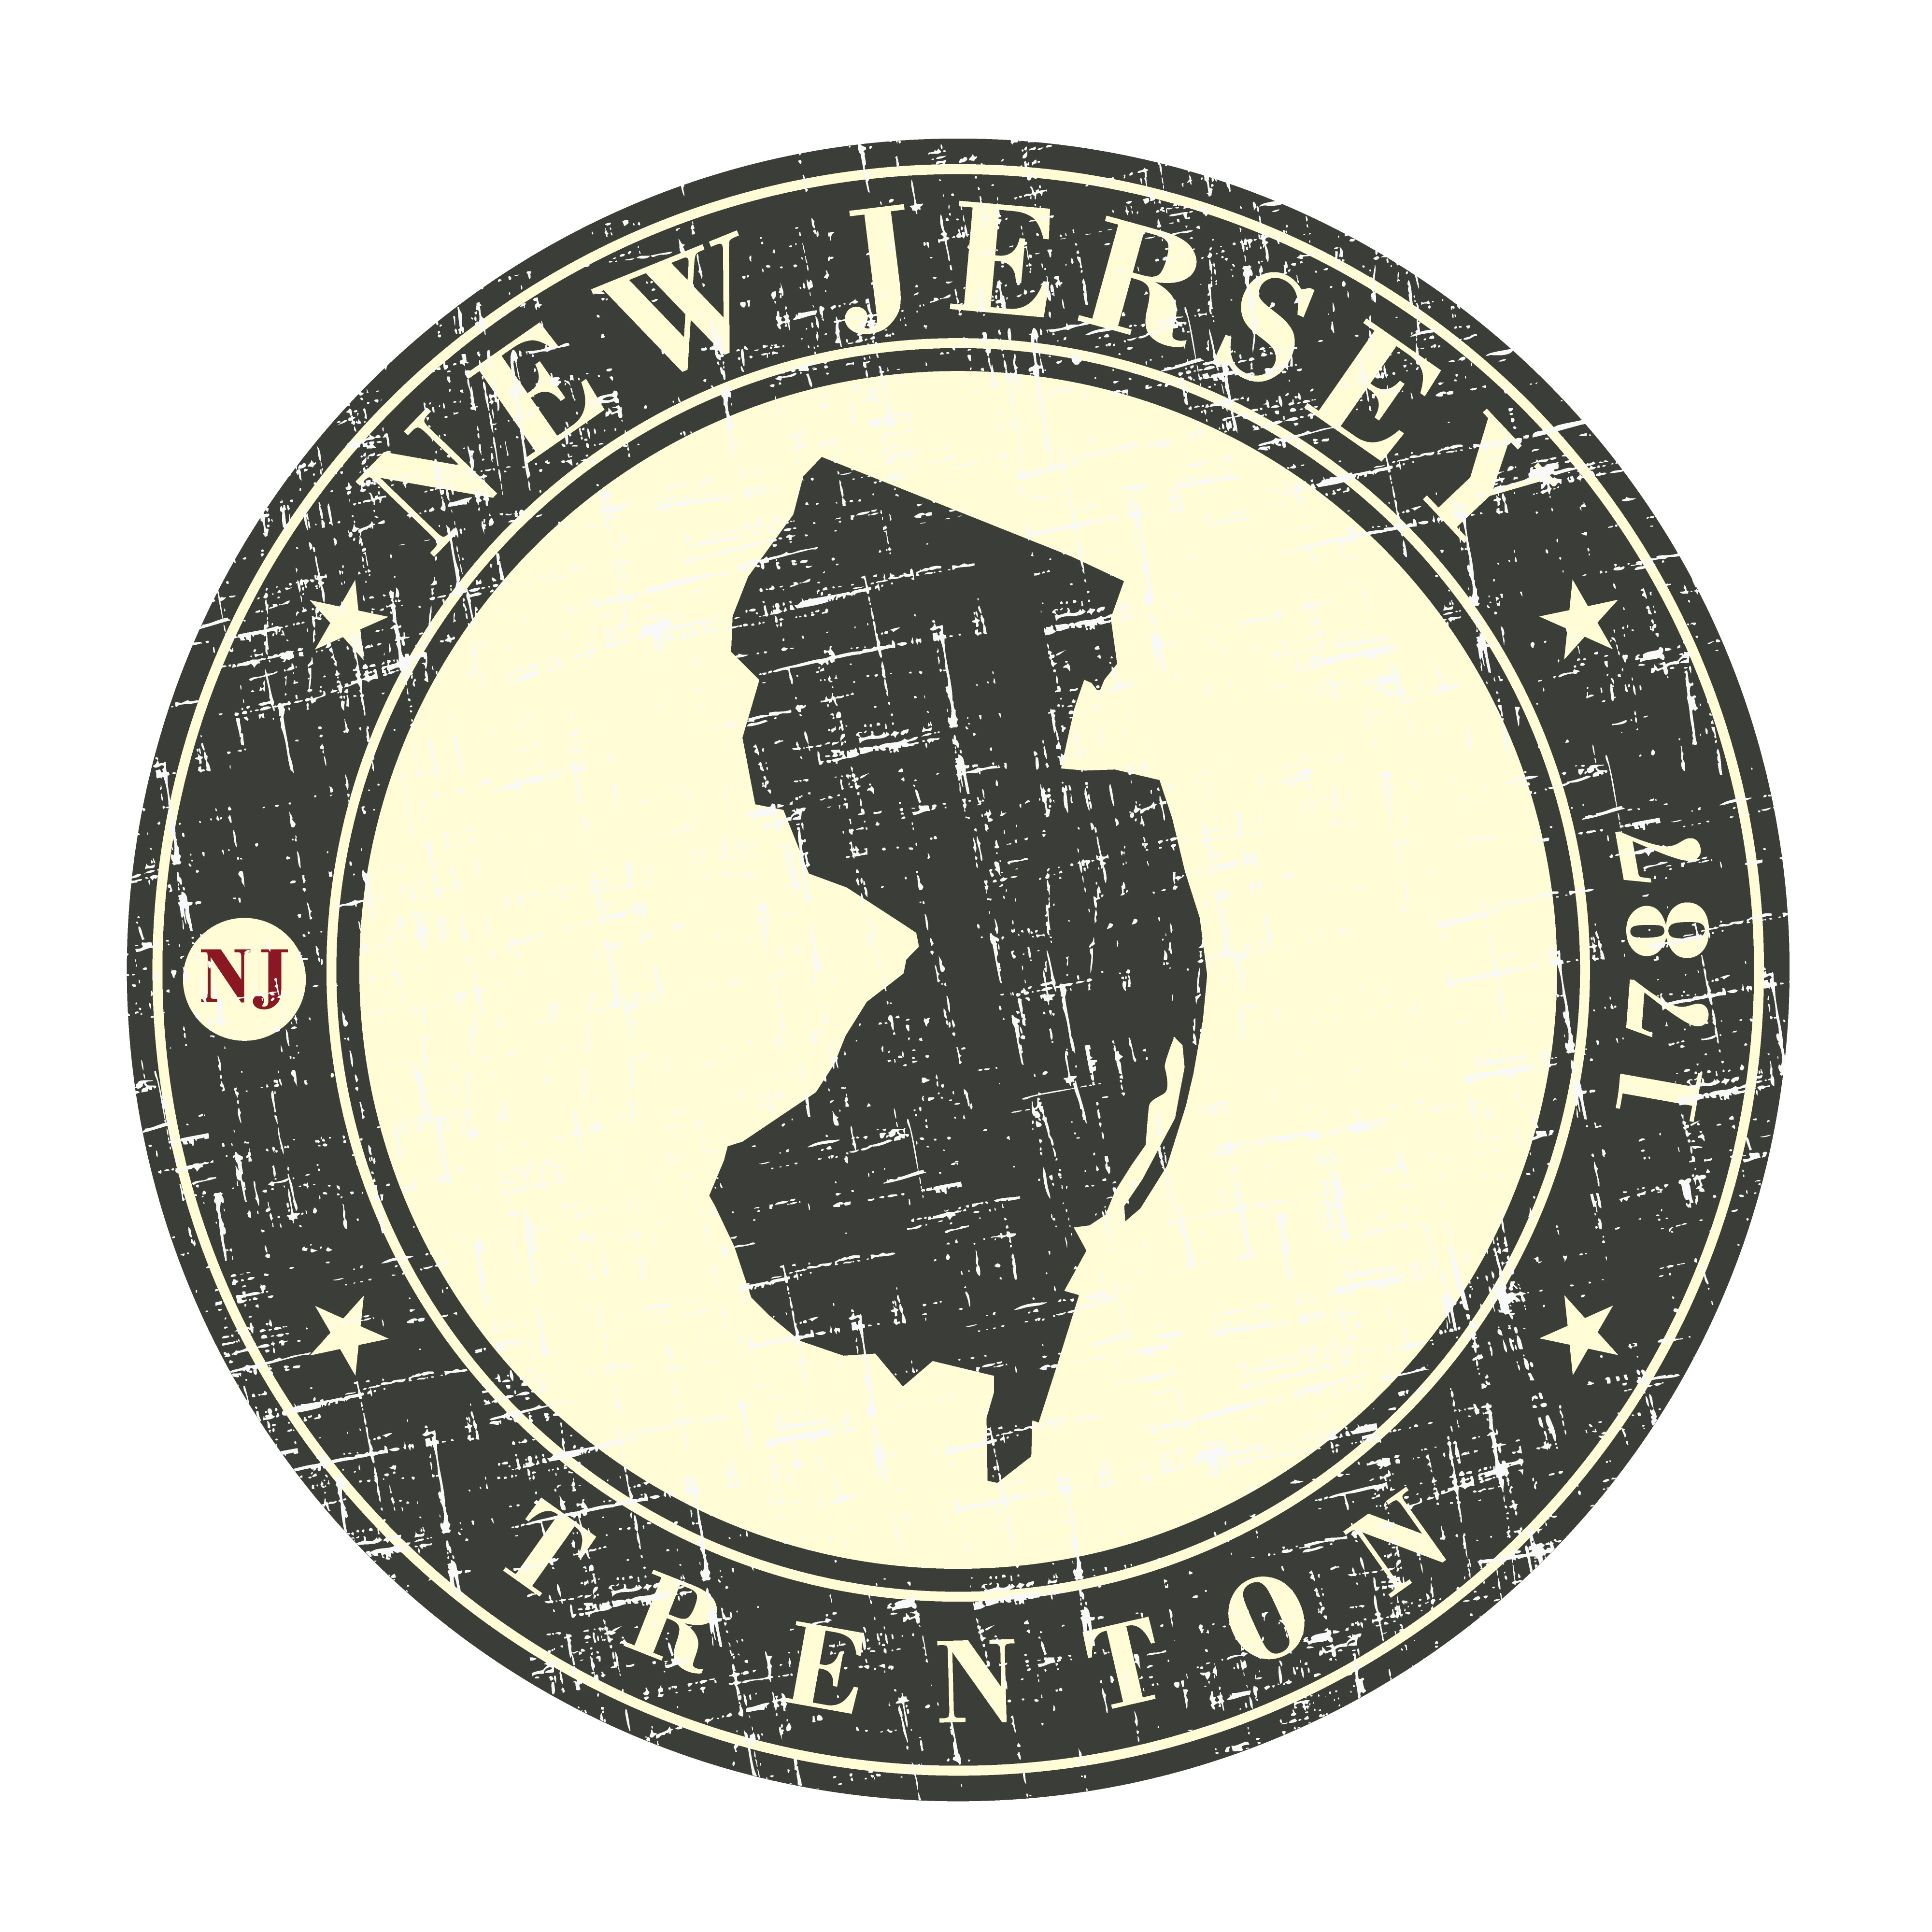 New Jersey-1